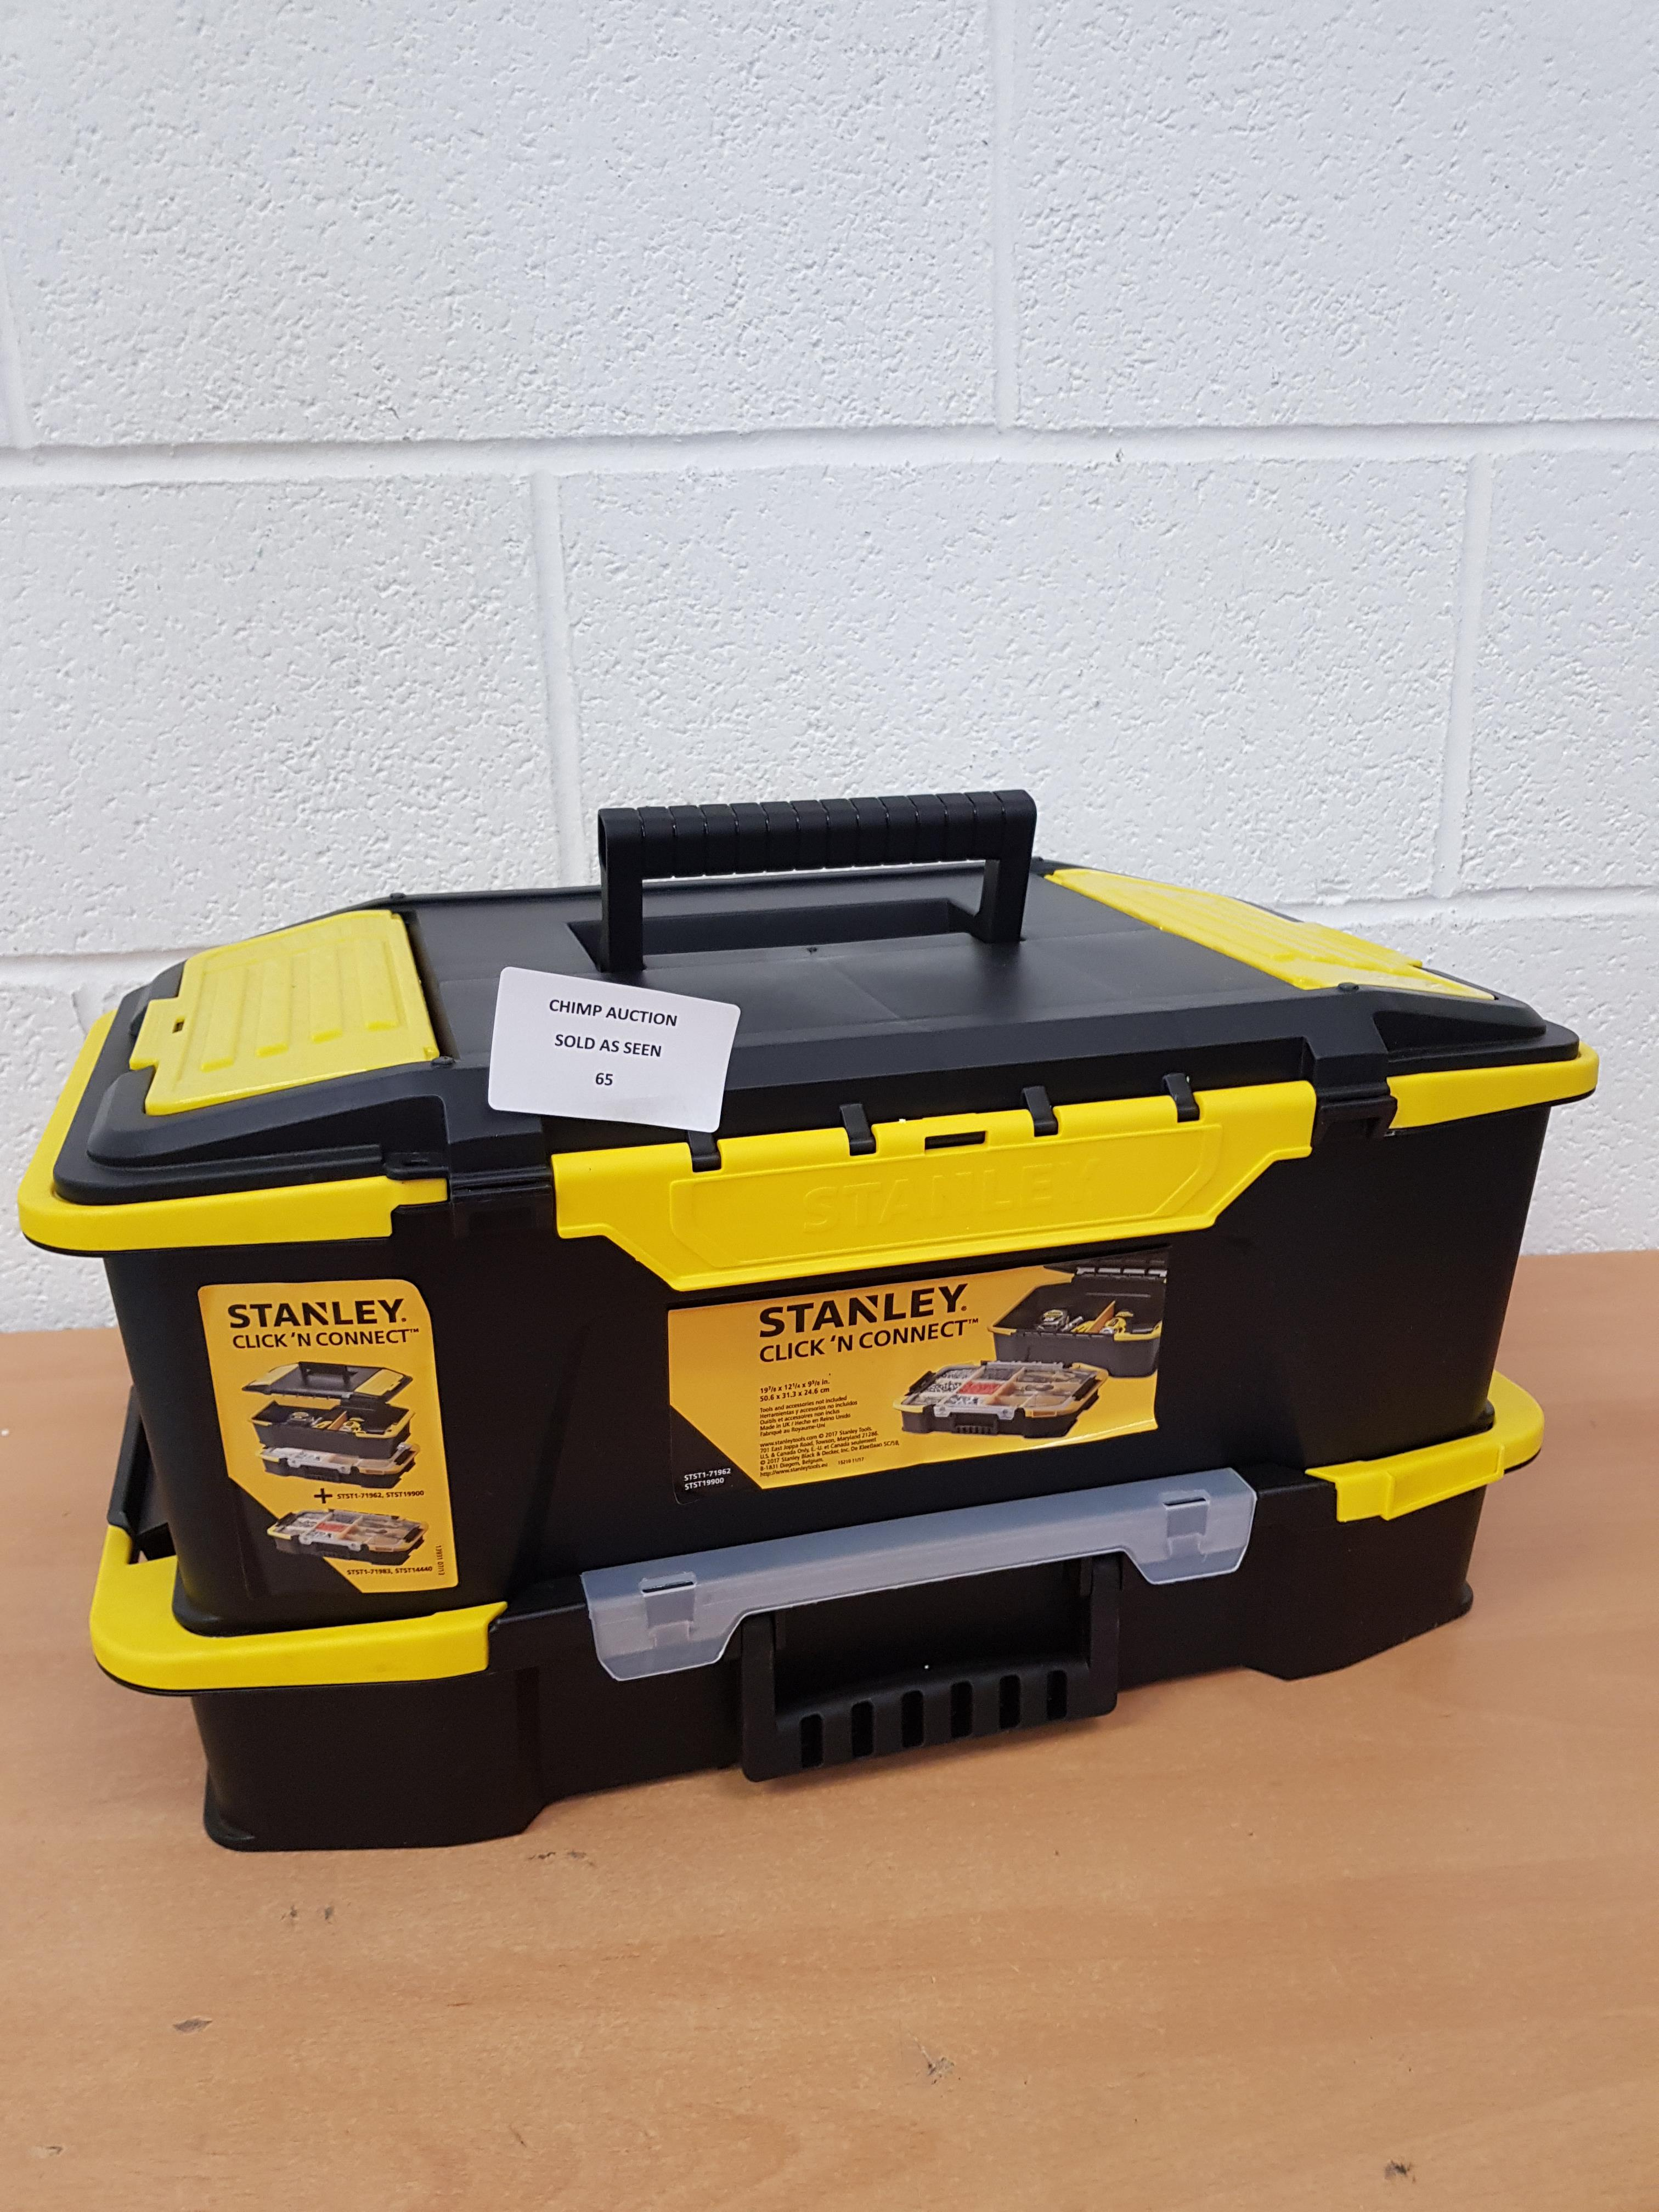 Lot 65 - Stanley Click ' N Connect Tool Organizer